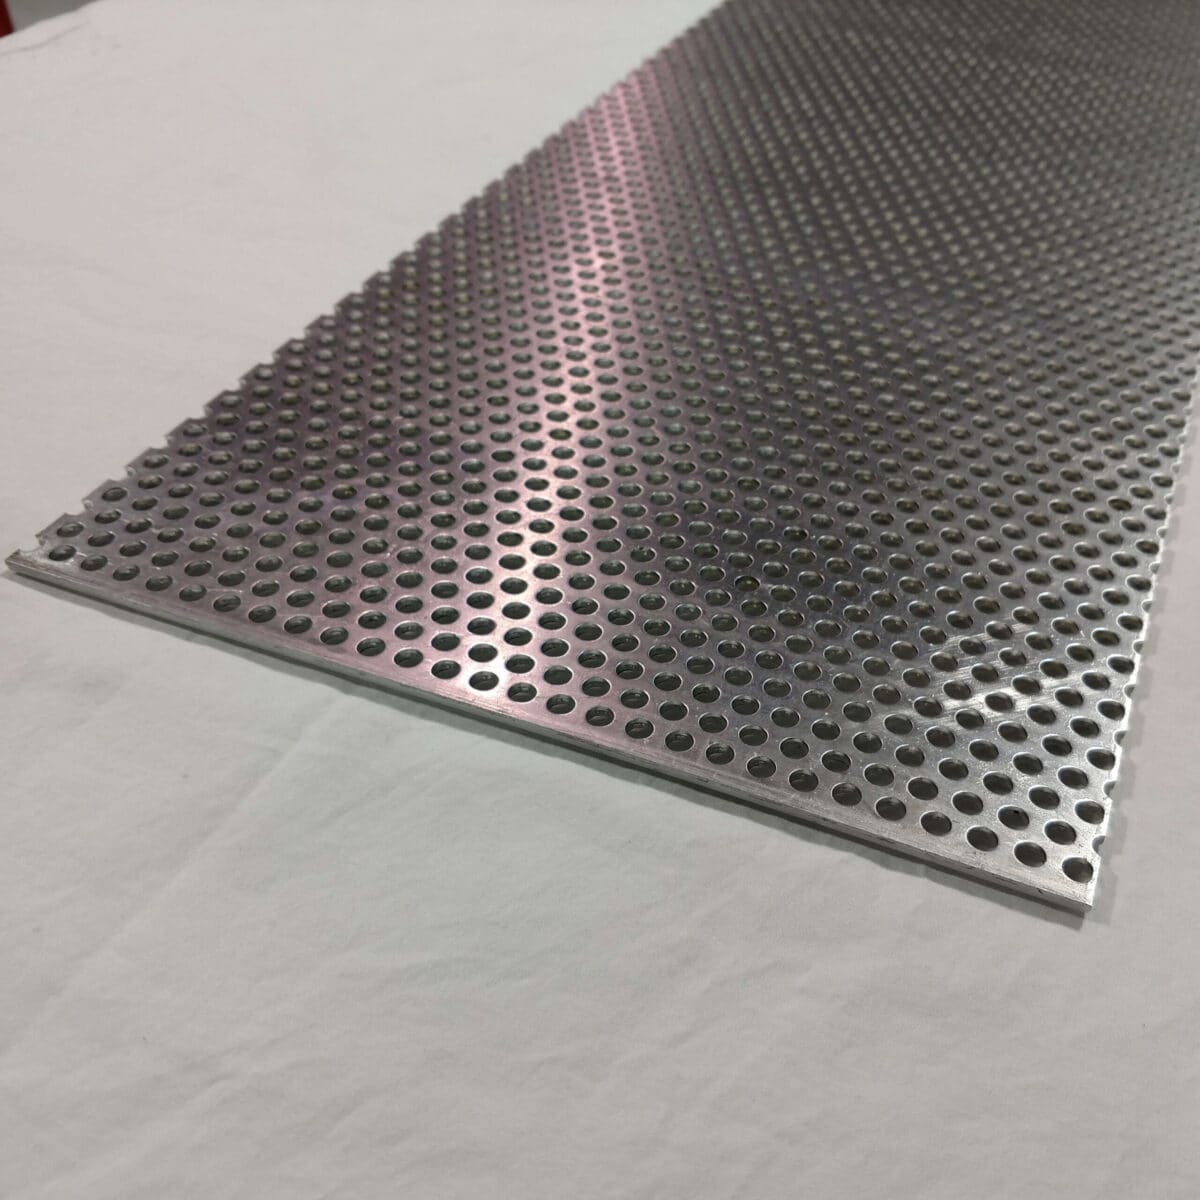 Aluminum Perforated Sheet 1 8 Thick 1 4 Hole 3 8